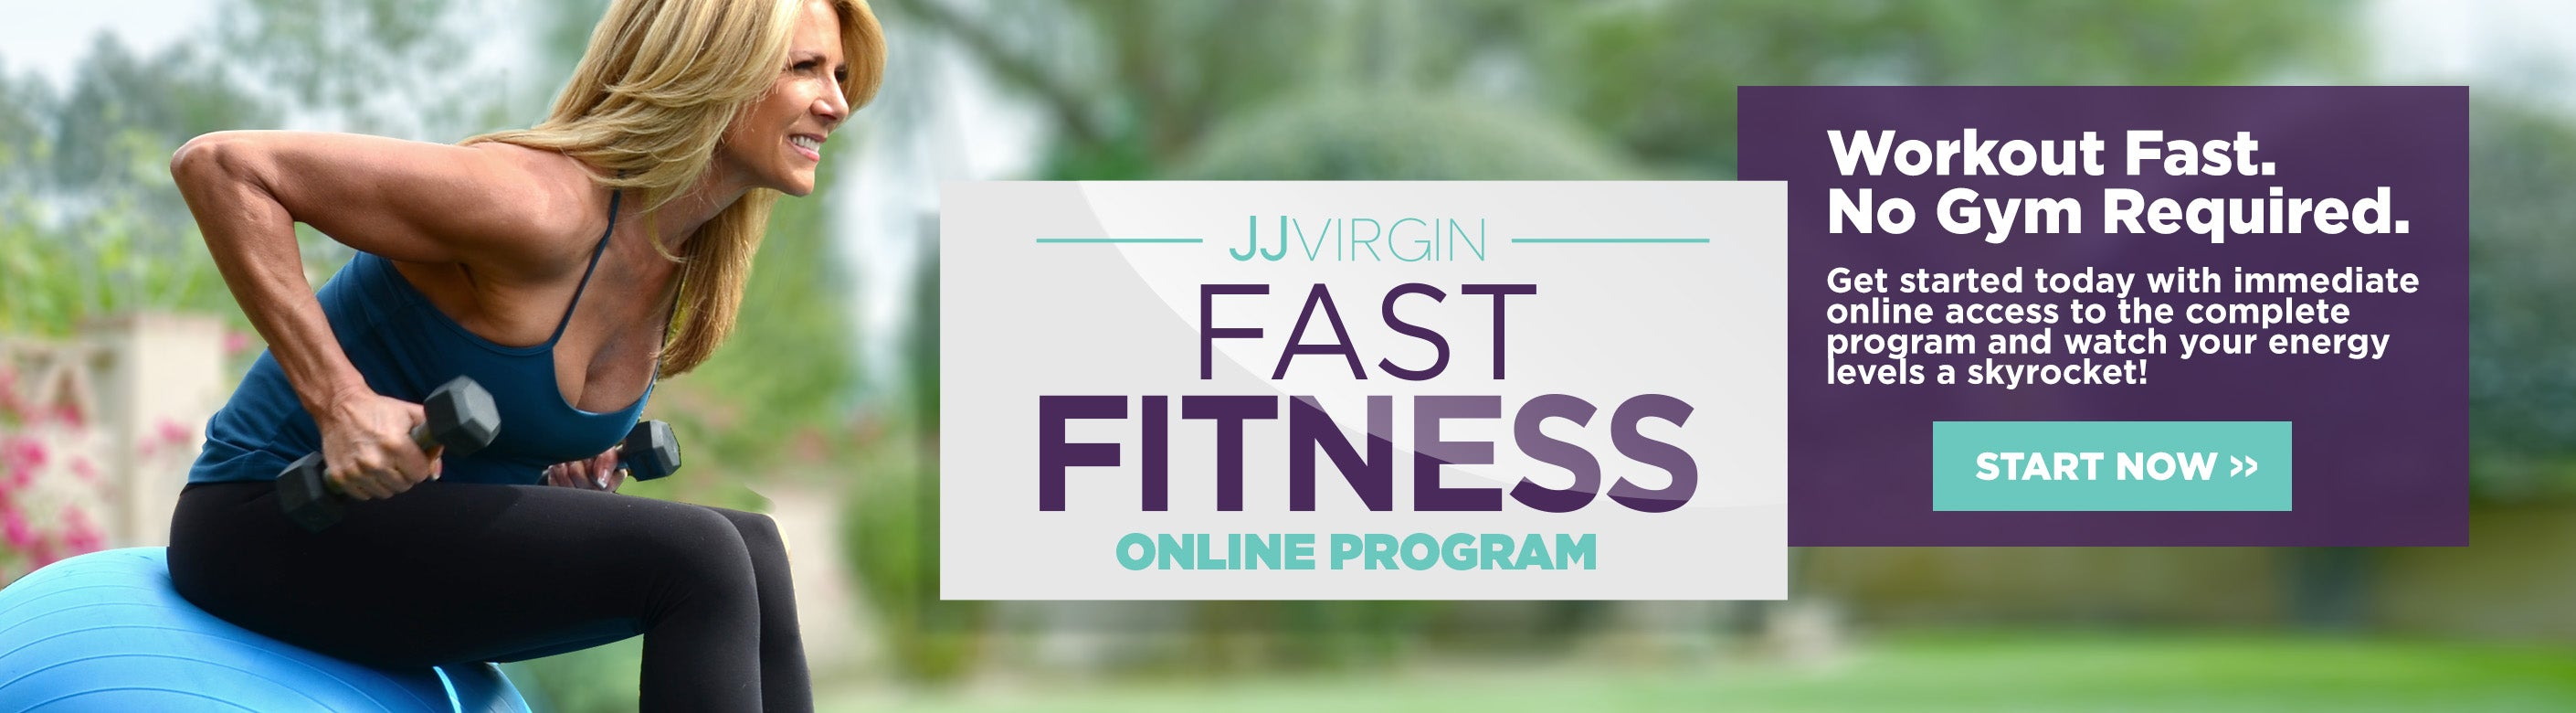 JJ Virgin - Fast Fitness